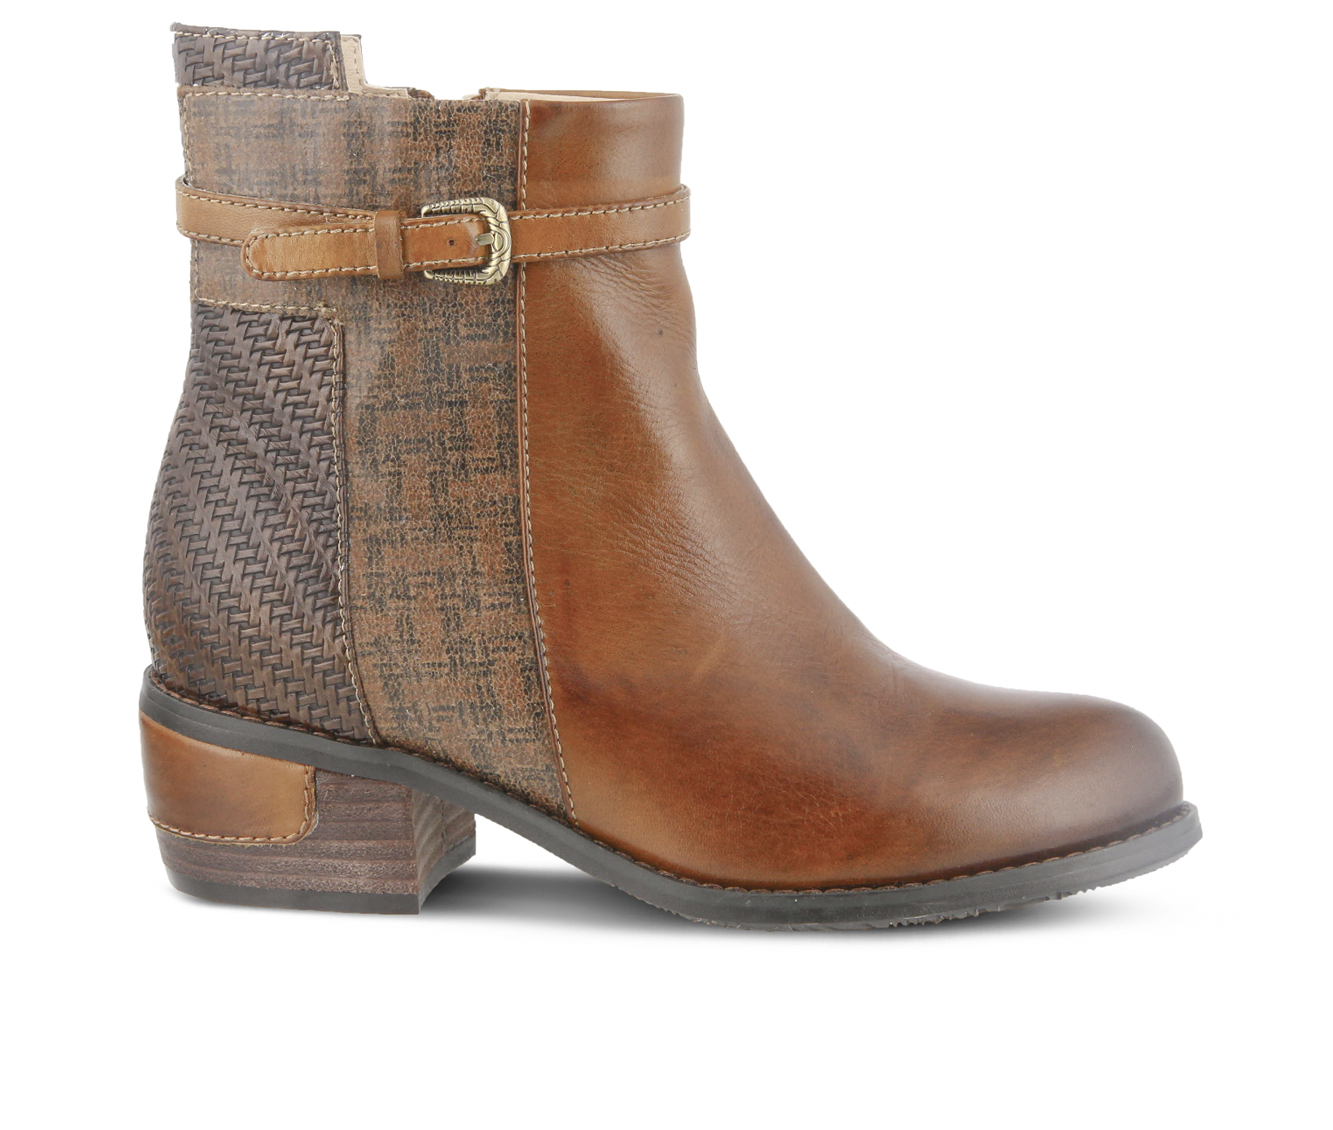 L'Artiste Kanessa Women's Boots (Brown Leather)